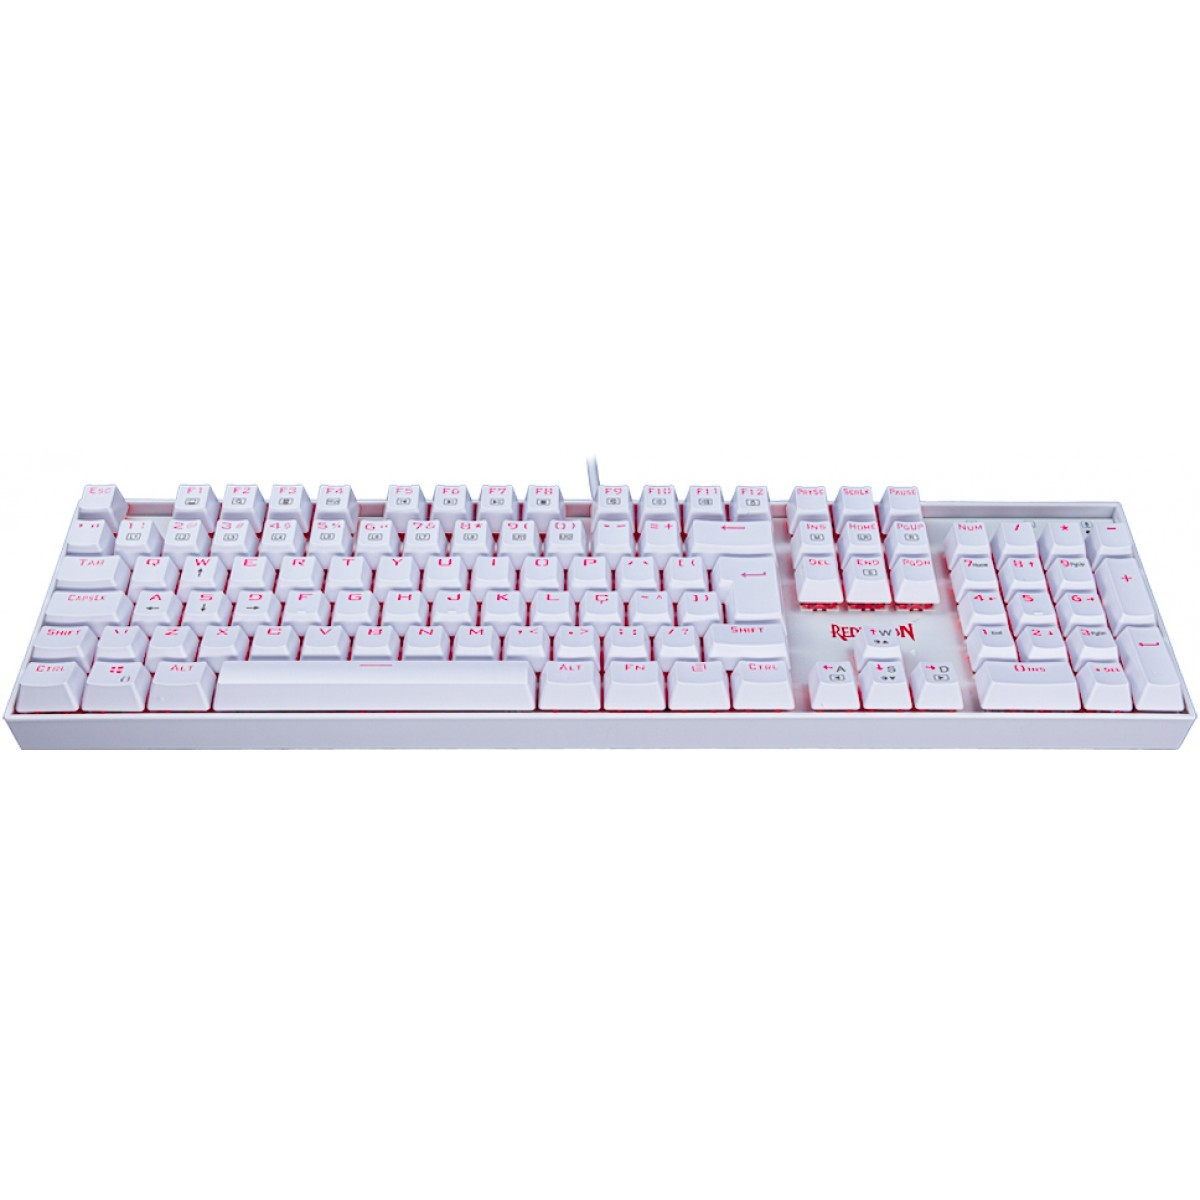 Teclado Mecânico Gamer Redragon Mitra Lunar K551W, Switch Brown, ABNT2, White